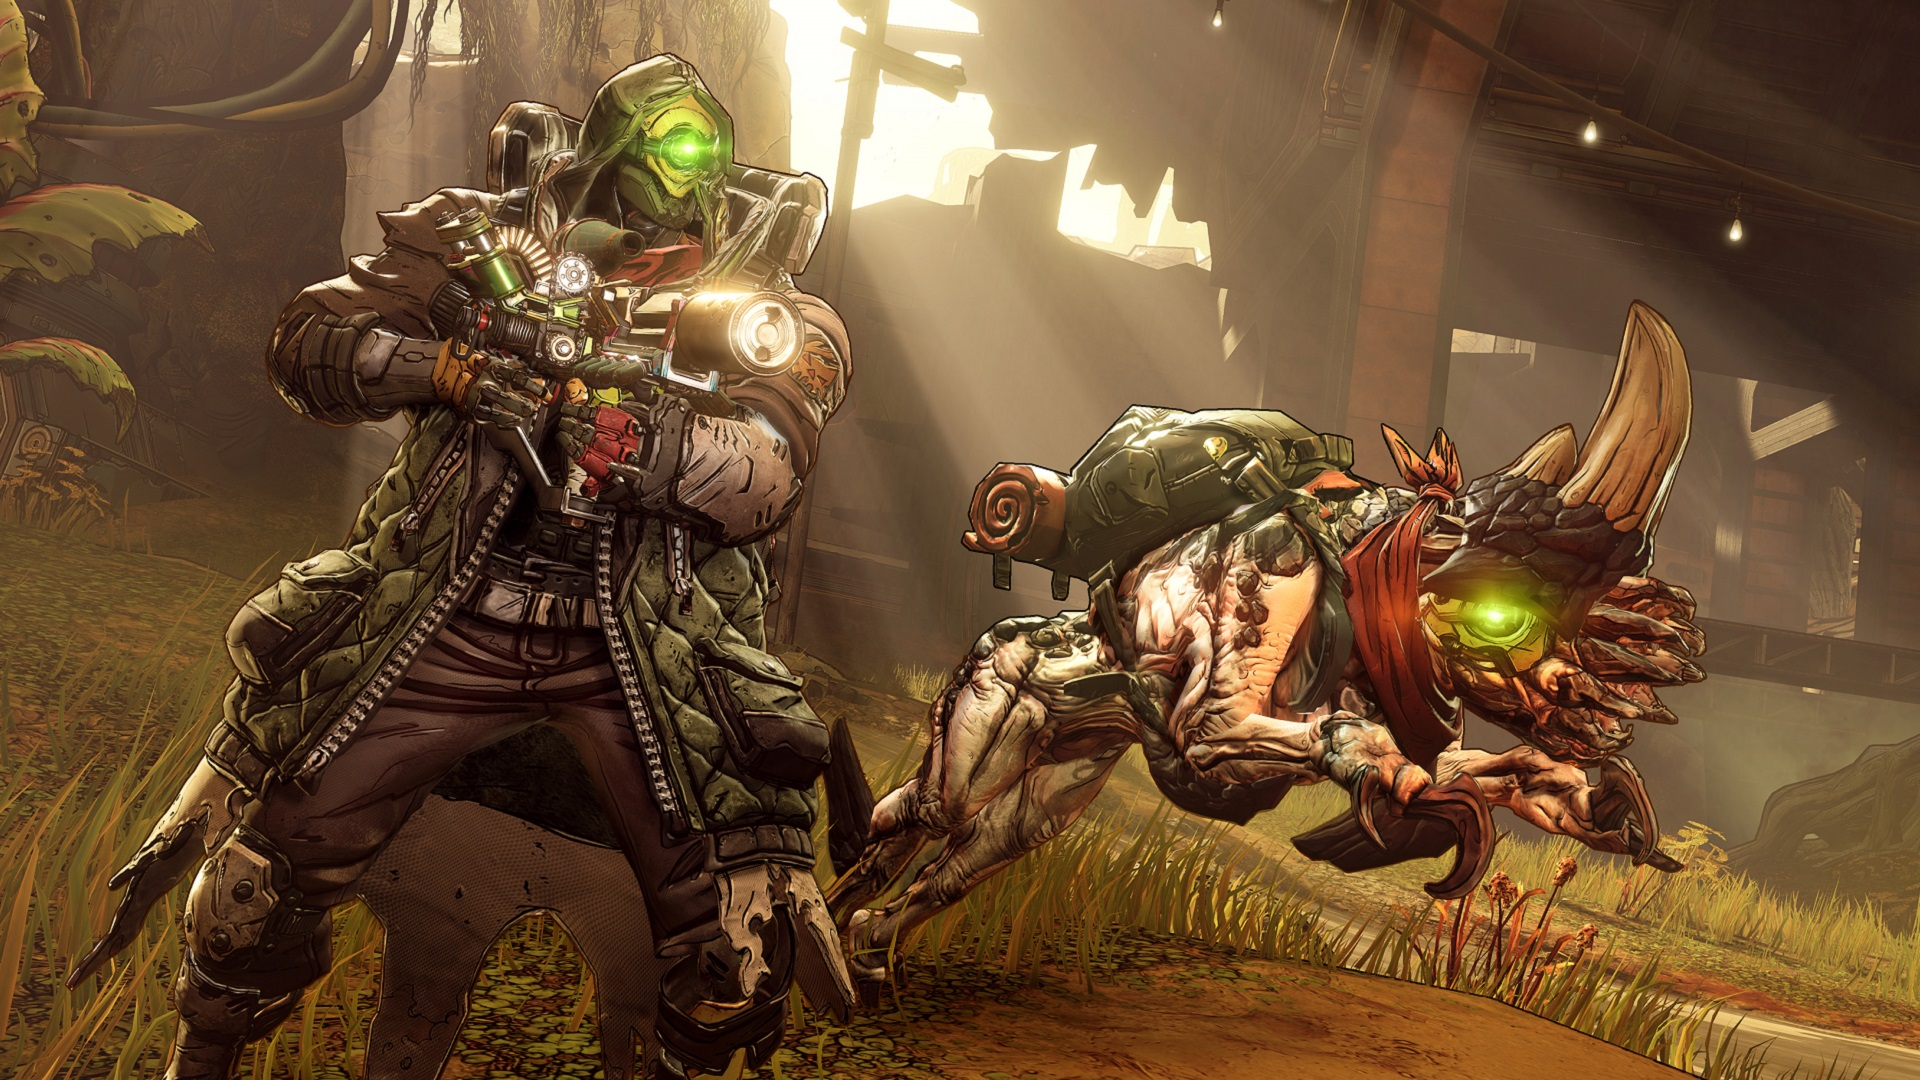 Does Borderlands 3 Have Microtransactions? Yes, But Gearbox Says They're Only Cosmetic